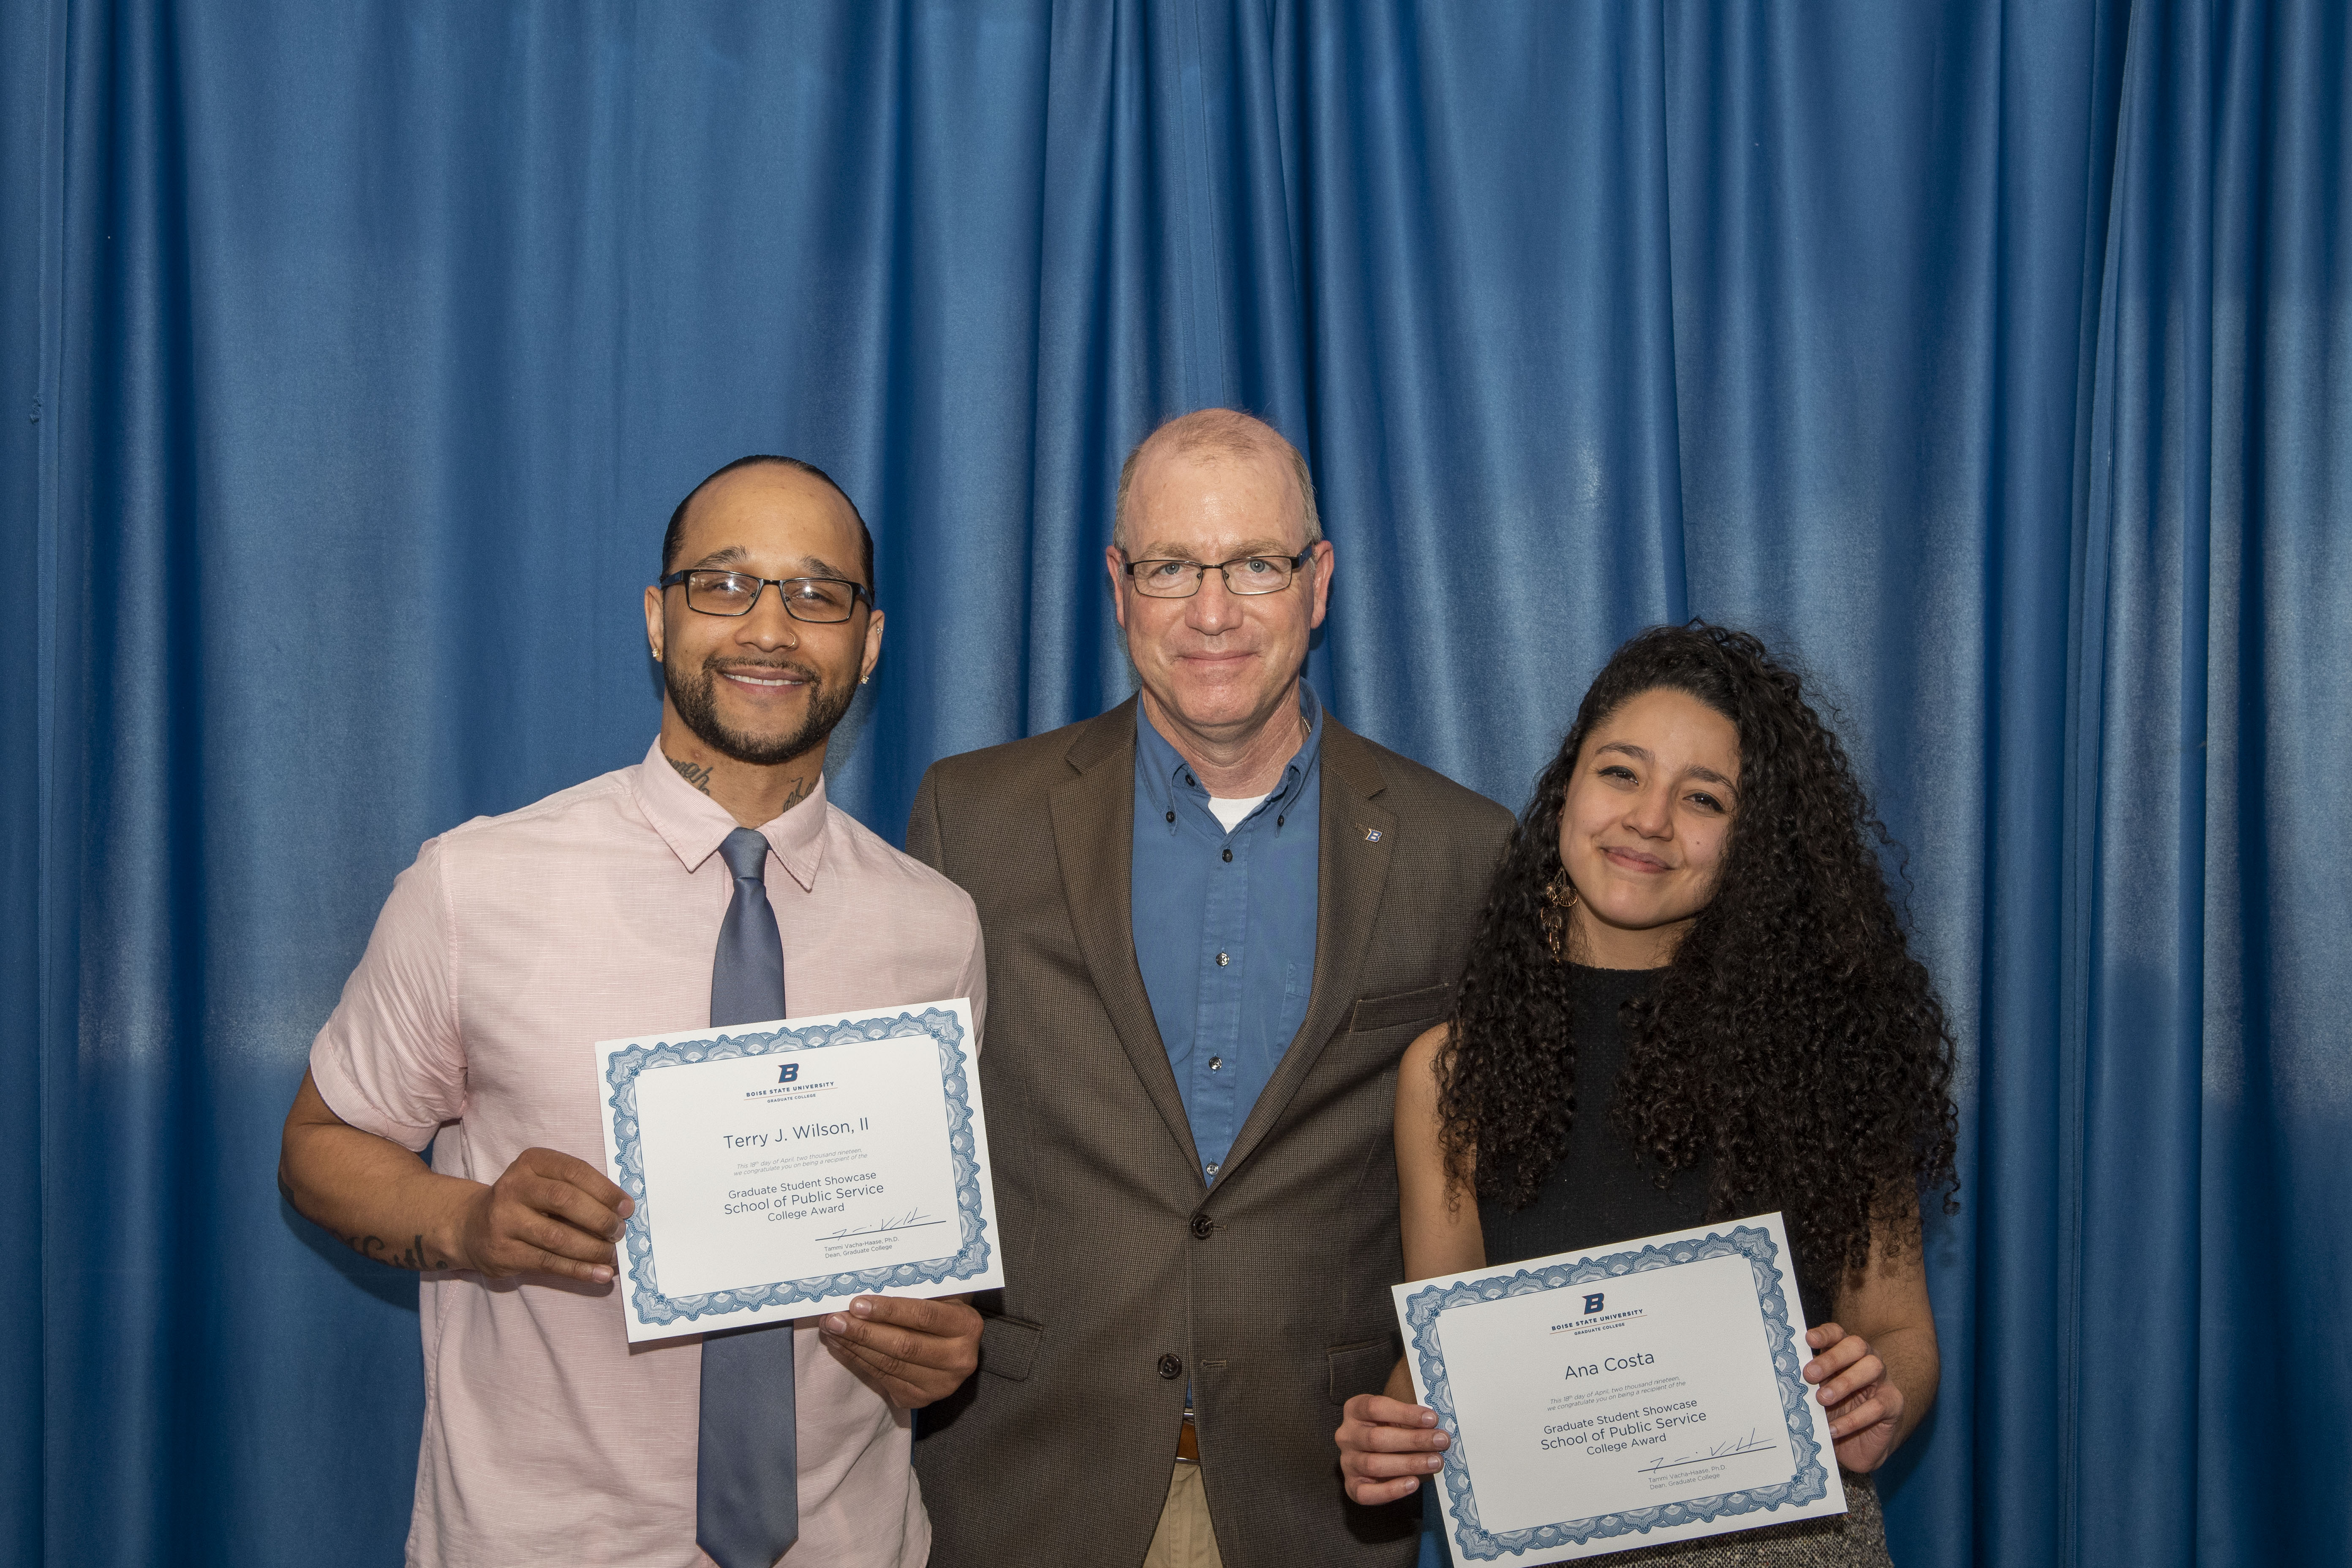 Graduate College Awards winners Terry Wilson and Ana Costa pictured with Dr. Andrew Giacomazzi